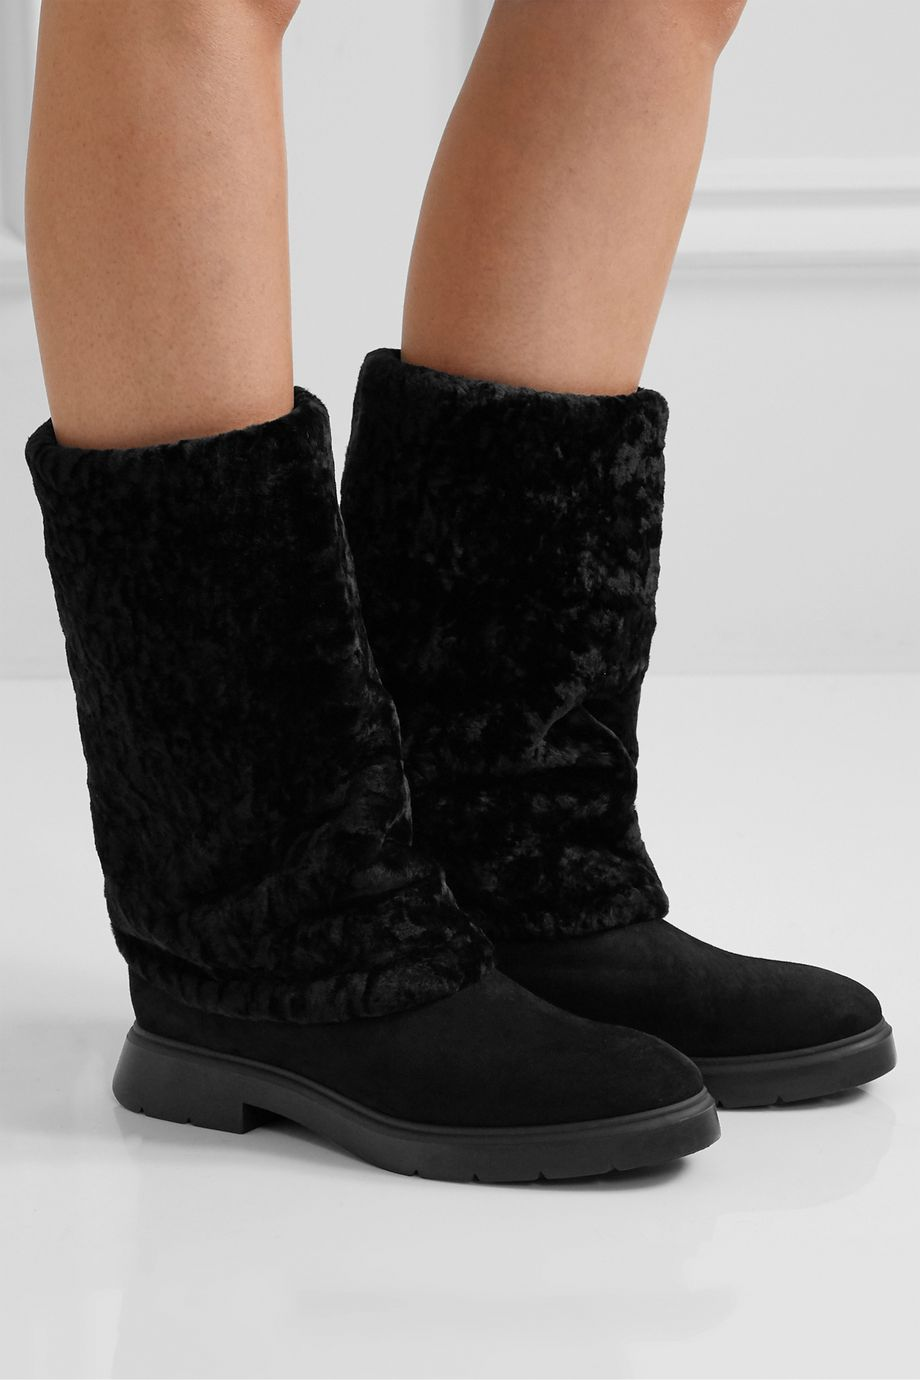 Stuart Weitzman Luiza Chill shearling-lined suede boots